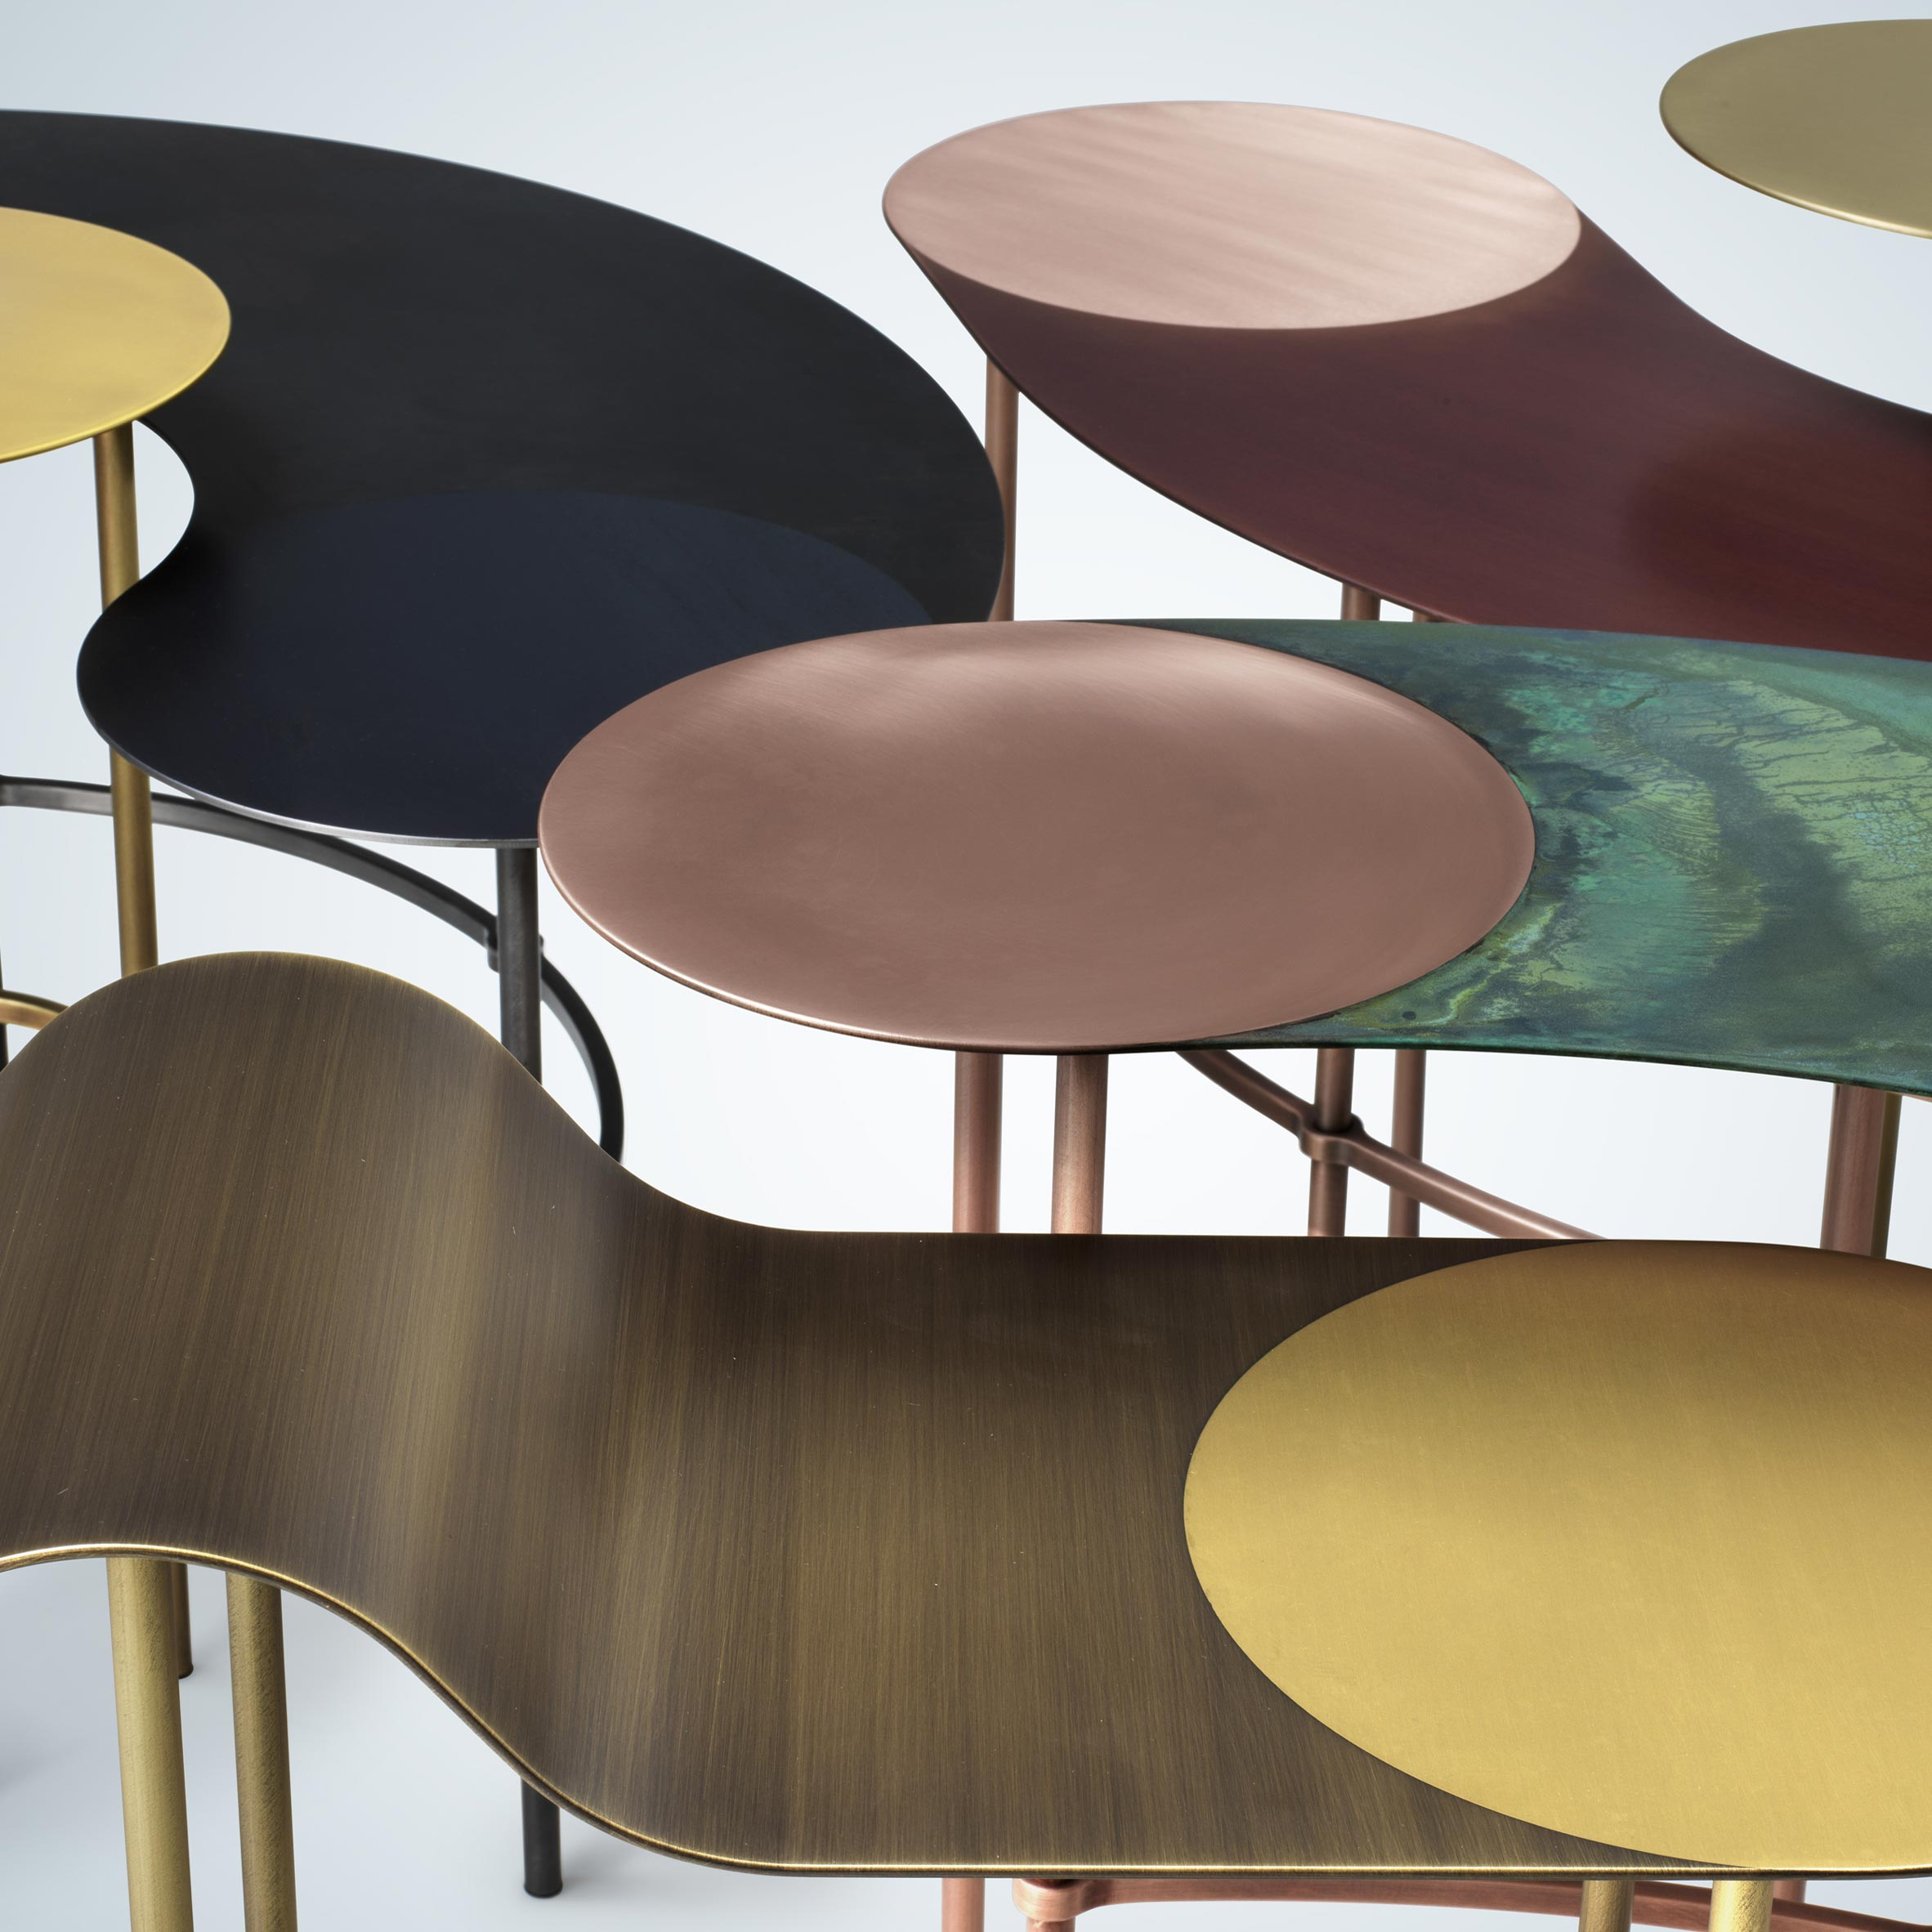 tracing-identity-milan-design-week-furniture_dezeen_guisset_volte_2364_col_sq-4